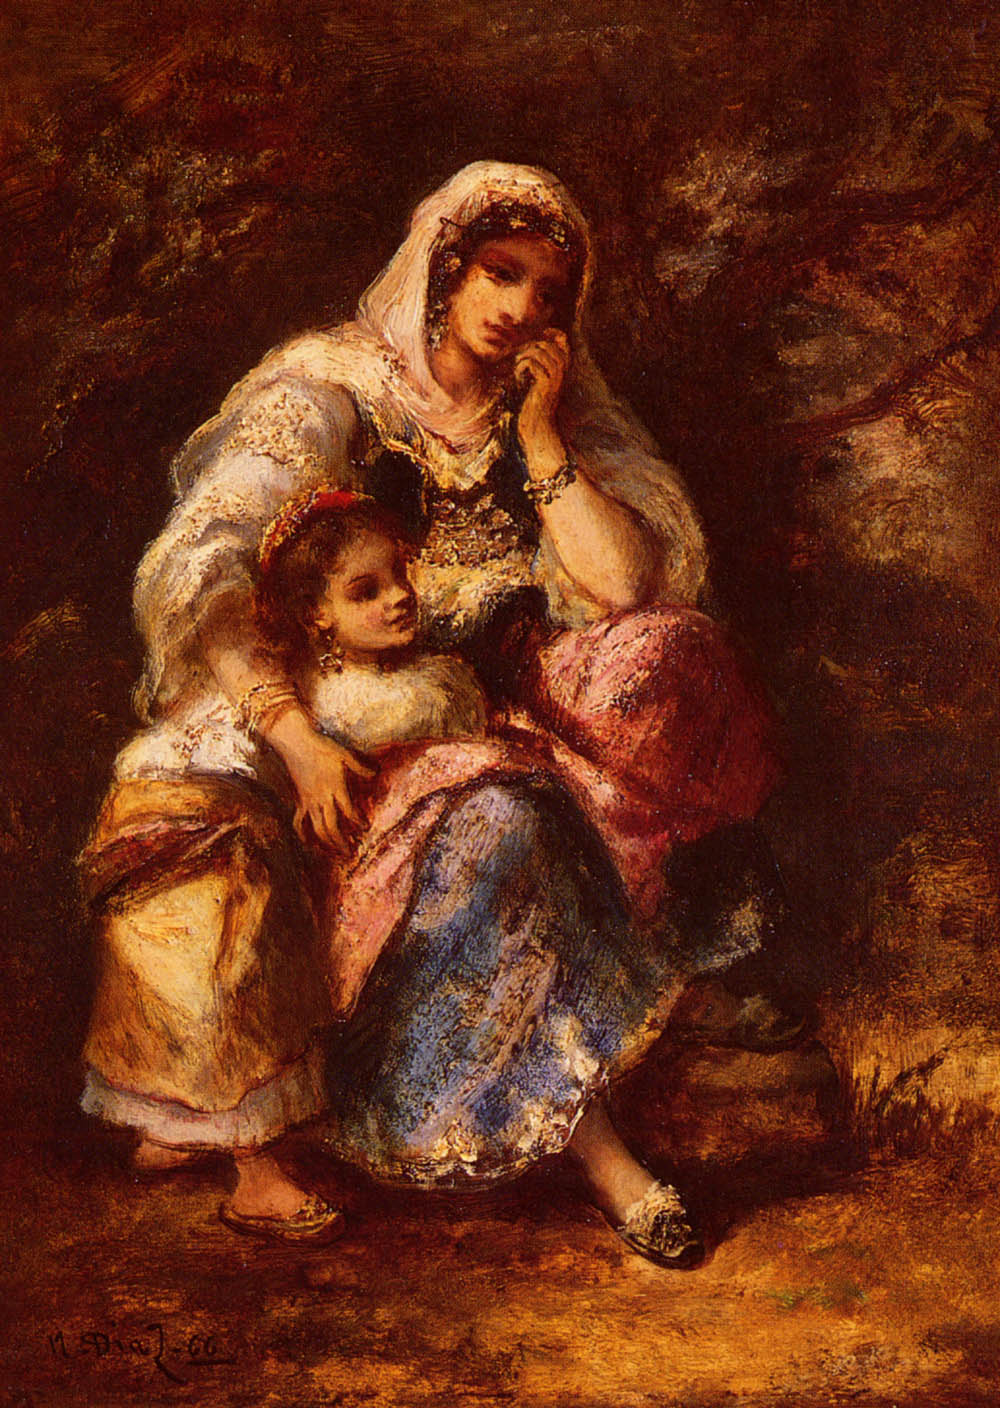 Gypsy Mother And Child | De La Pena Narcisse Virgile Diaz | Oil Painting